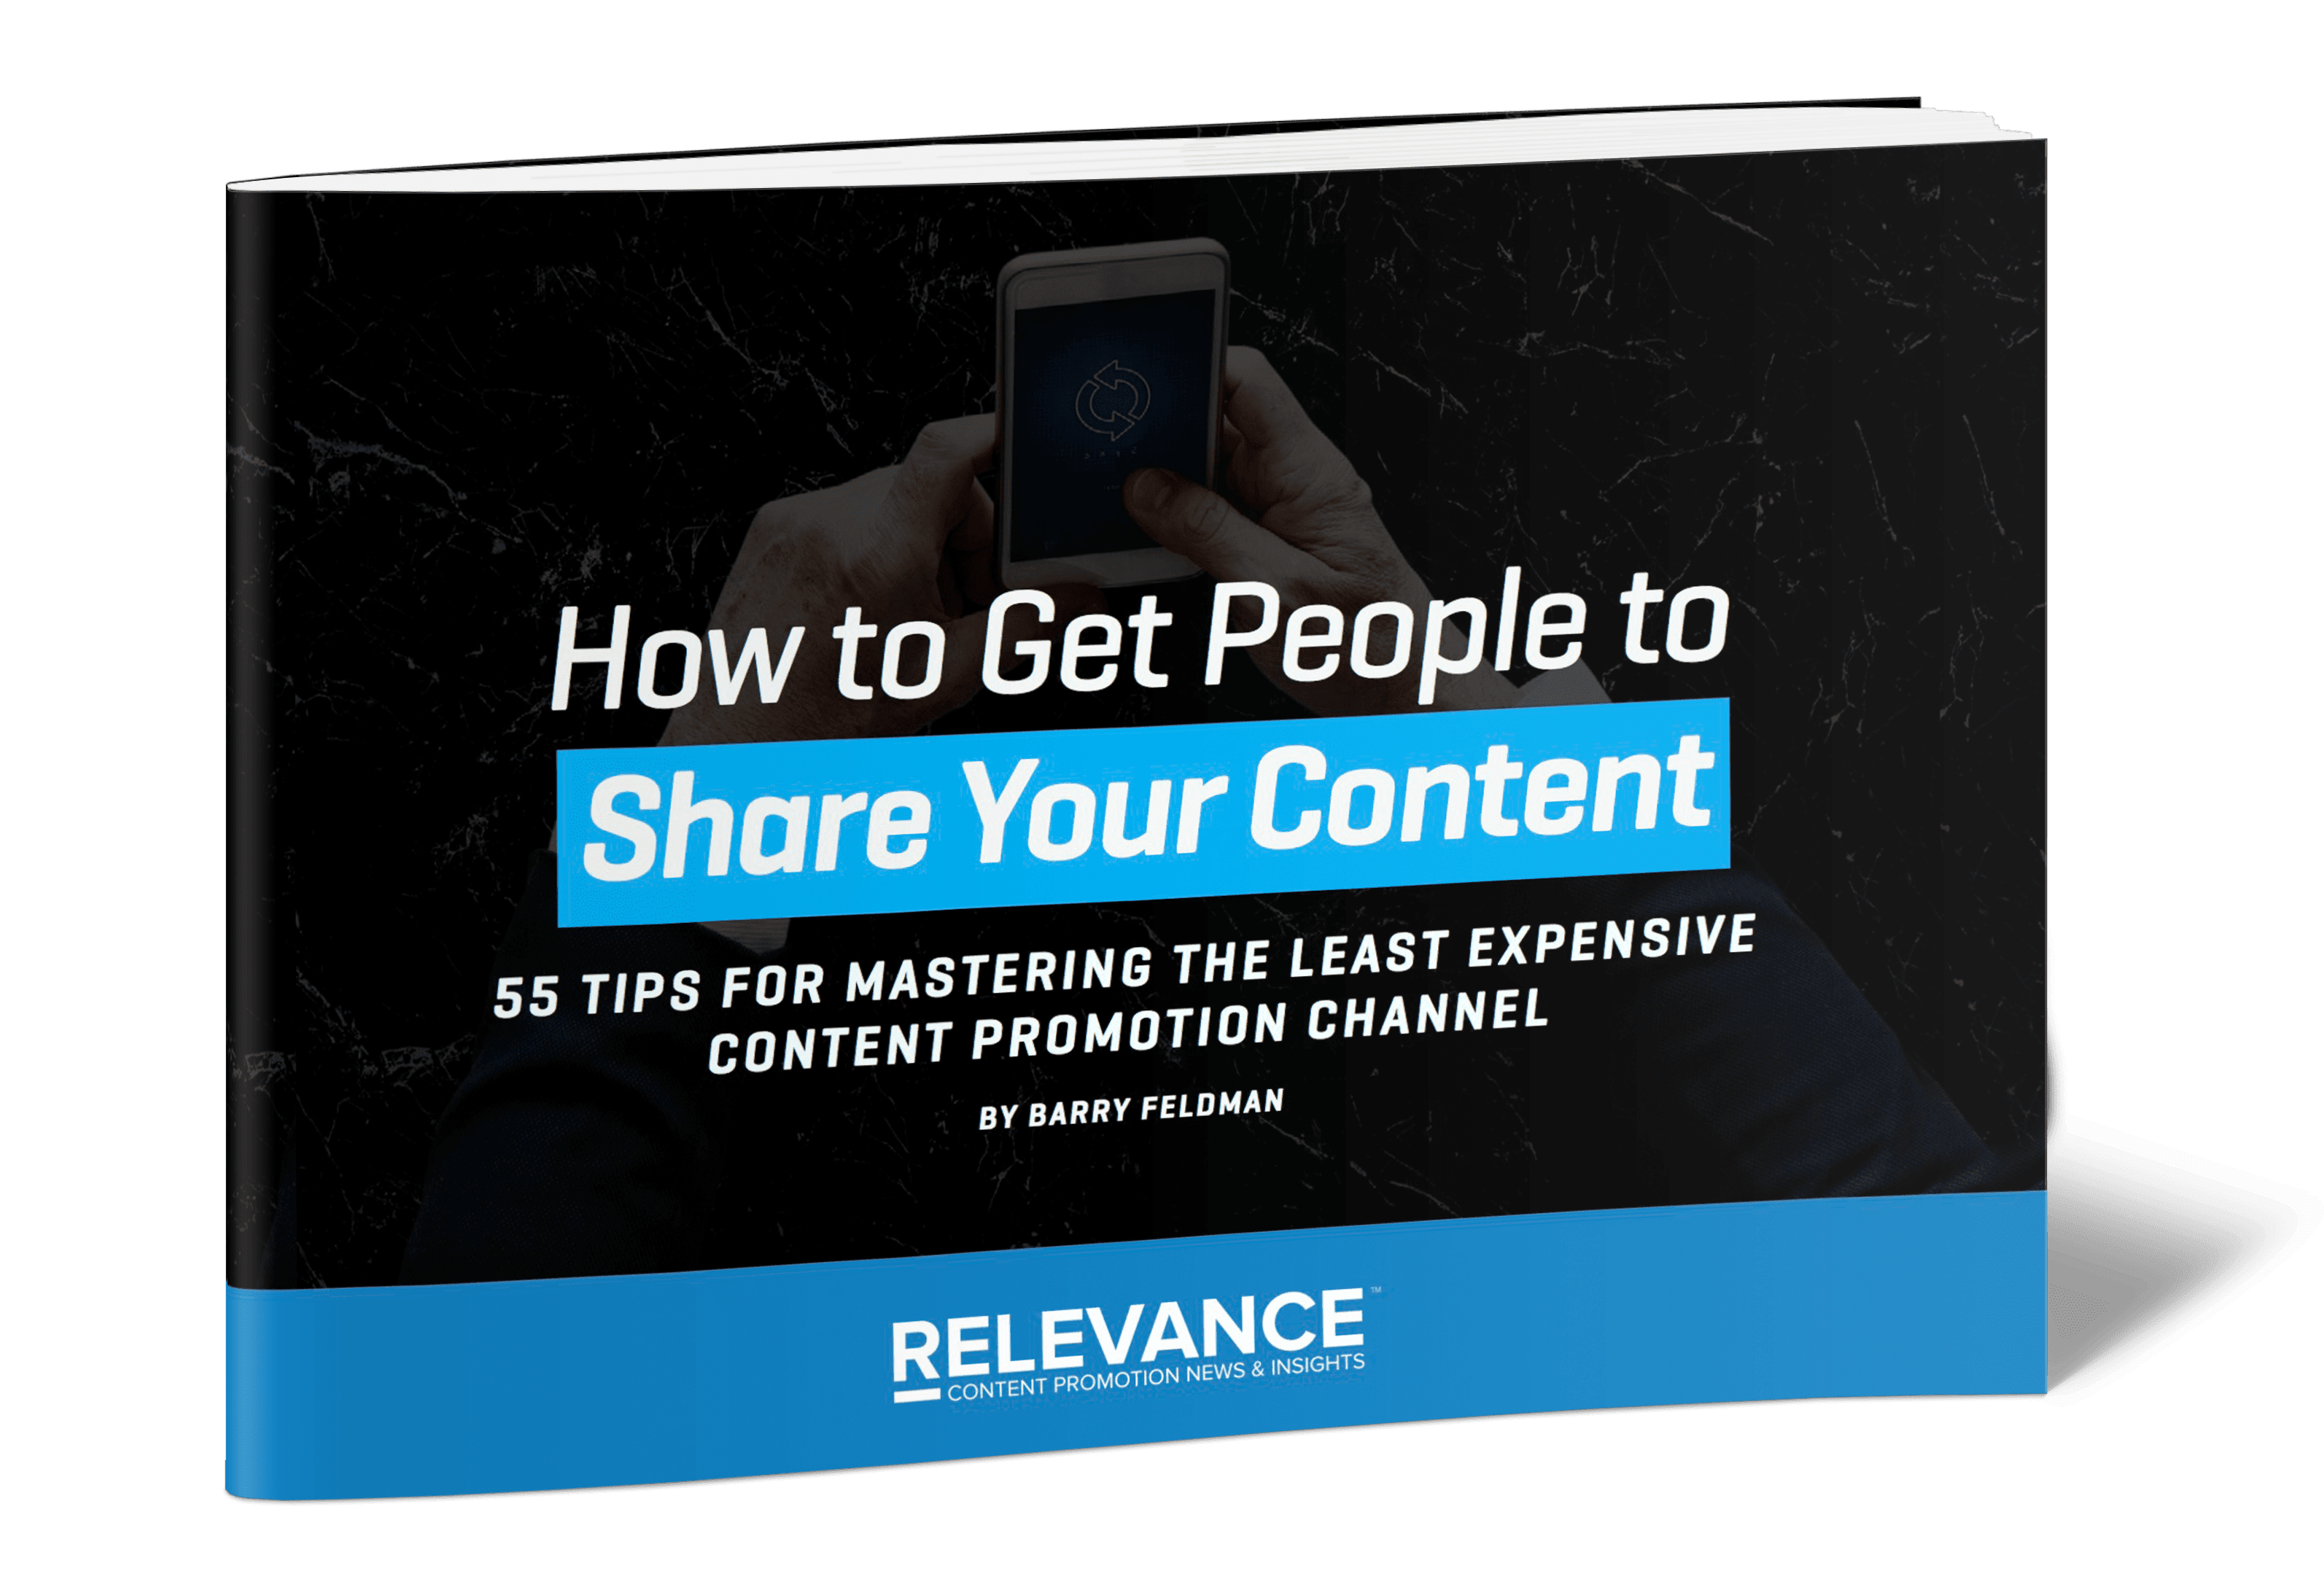 How To Get People to Share Your Content